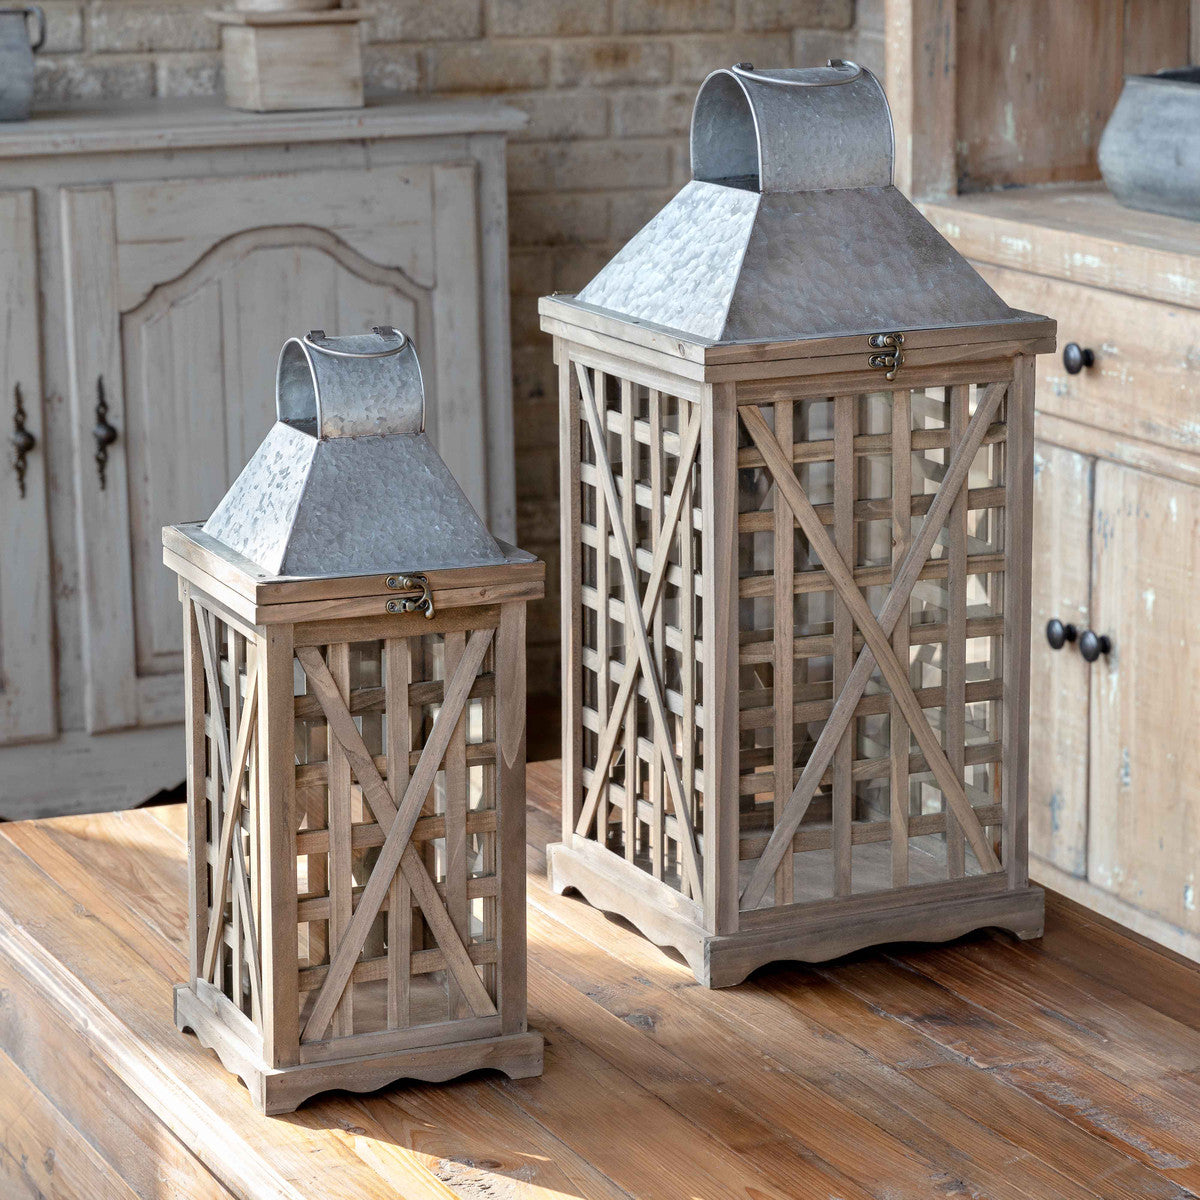 Lovecup Tobacco Barn Lanterns, Set of 2 L328